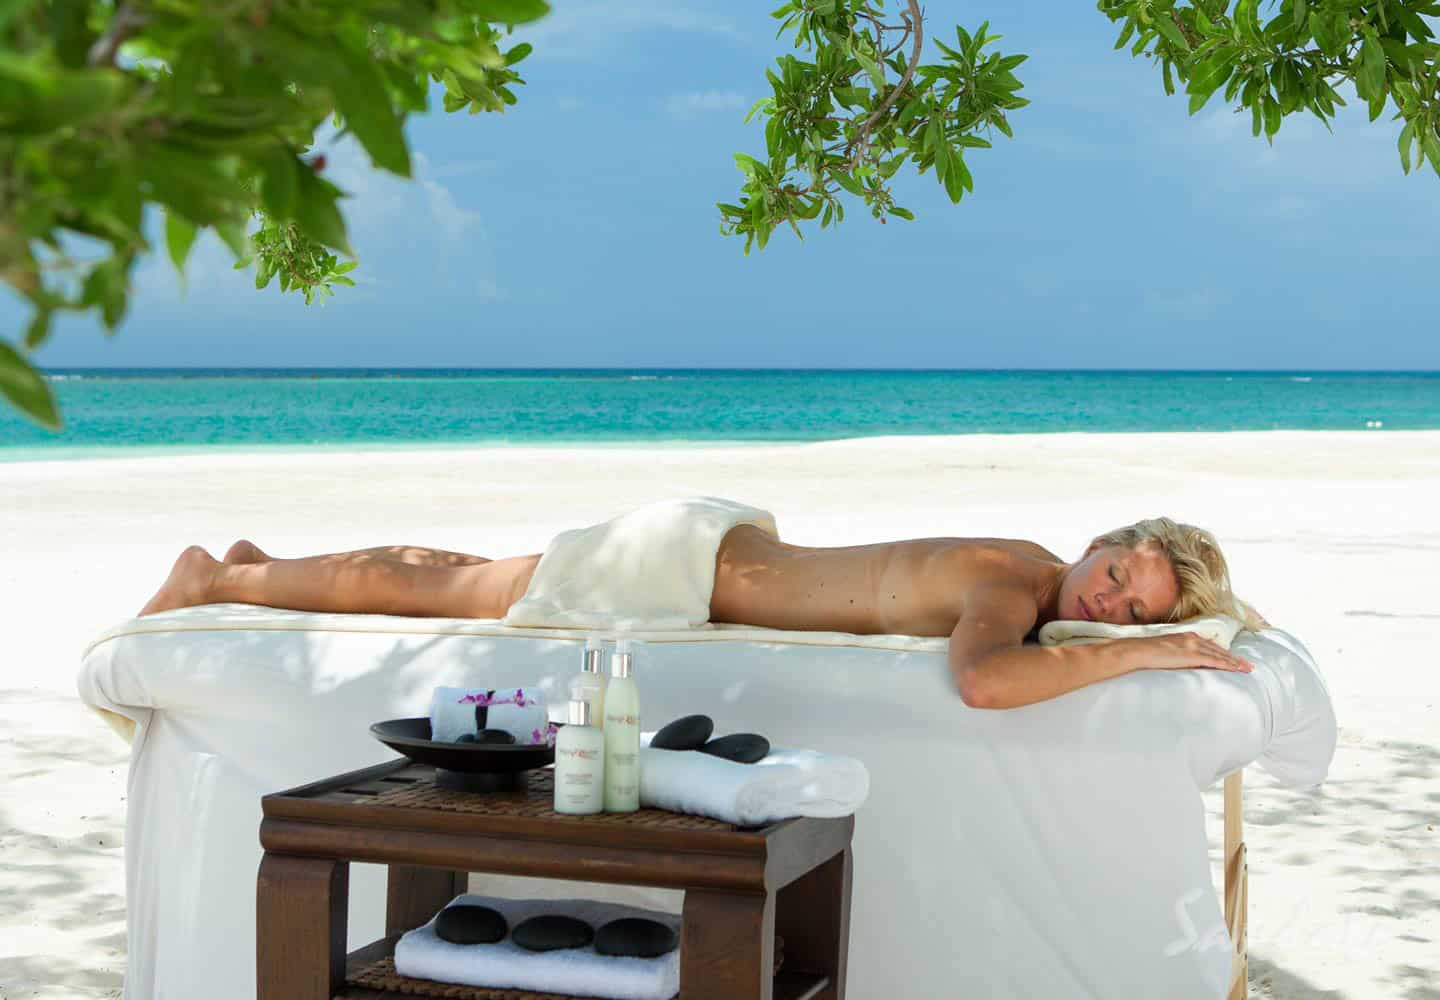 woman laying on a massage table on the beach, cold beverage are on a serving table close by at Sandals South Coast Whitehouse Jamaica resort, perfect location to relax and for all inclusive vacations adults only, planned by Southern Travel Agency Augusta, GA